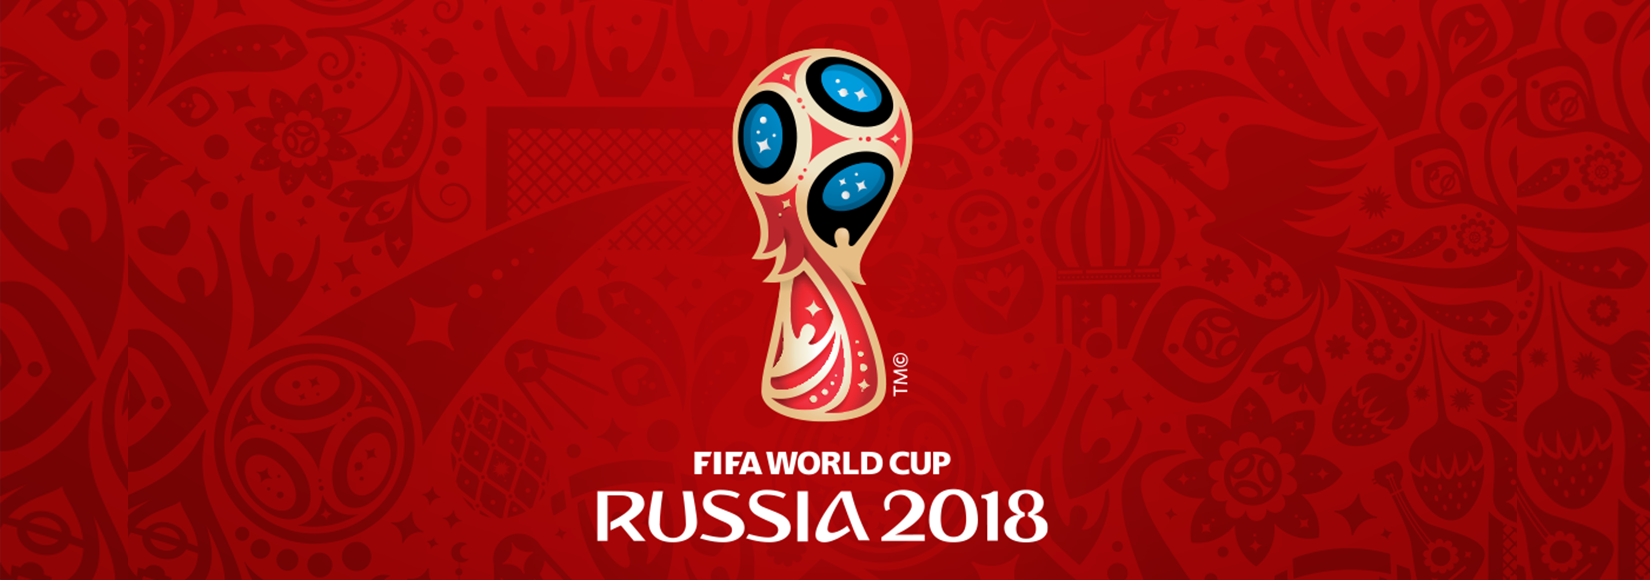 logo 2018 FIFA World Cup Russia banner 1650x580